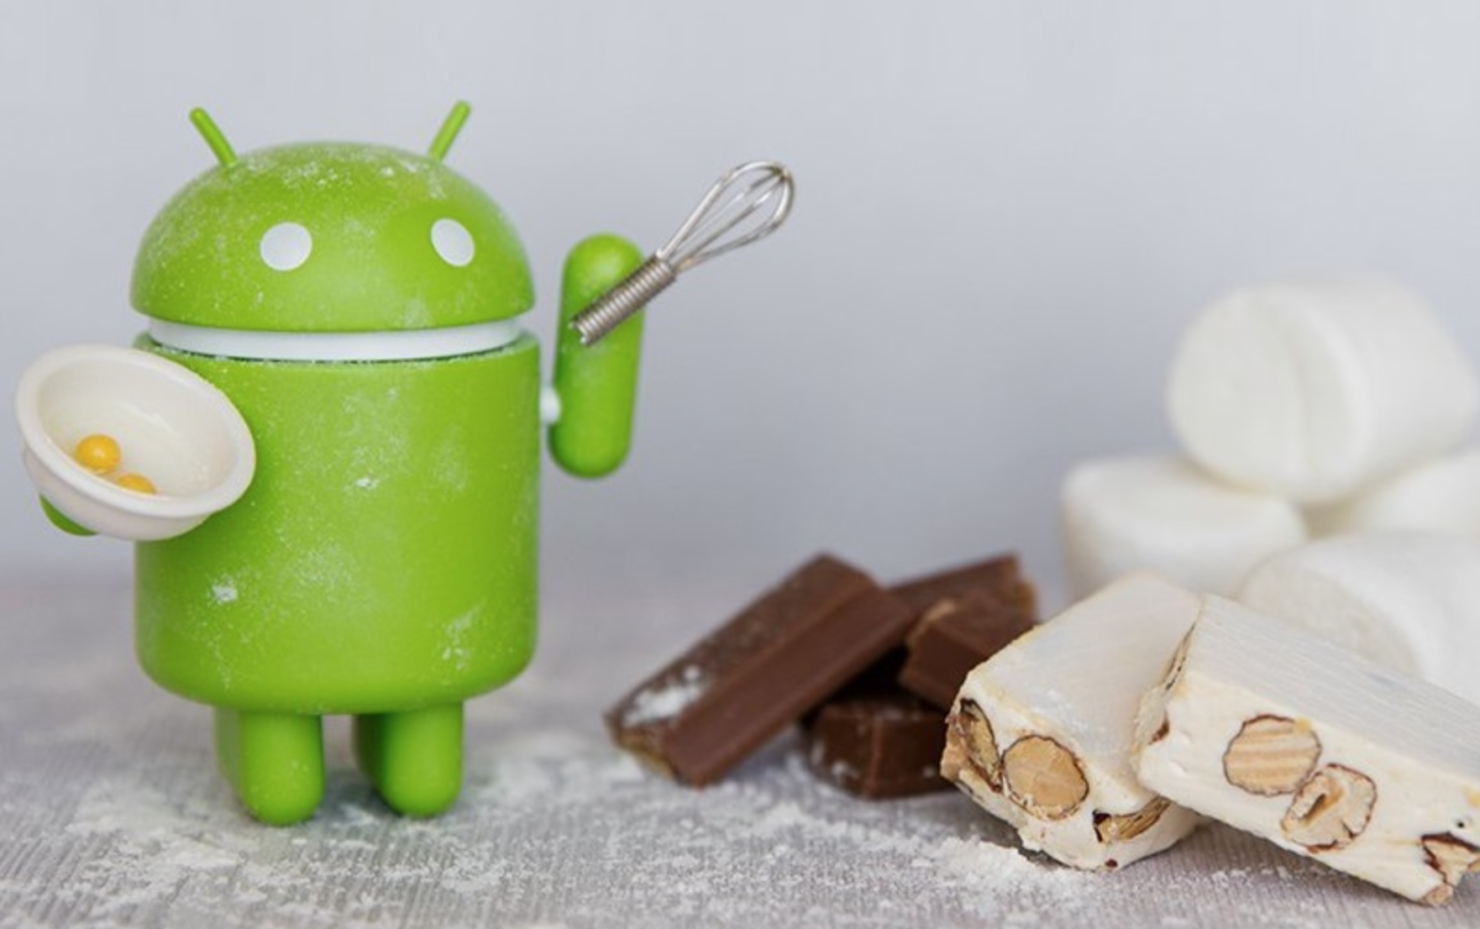 update Nexus 6 to Android 7.1 Nougat